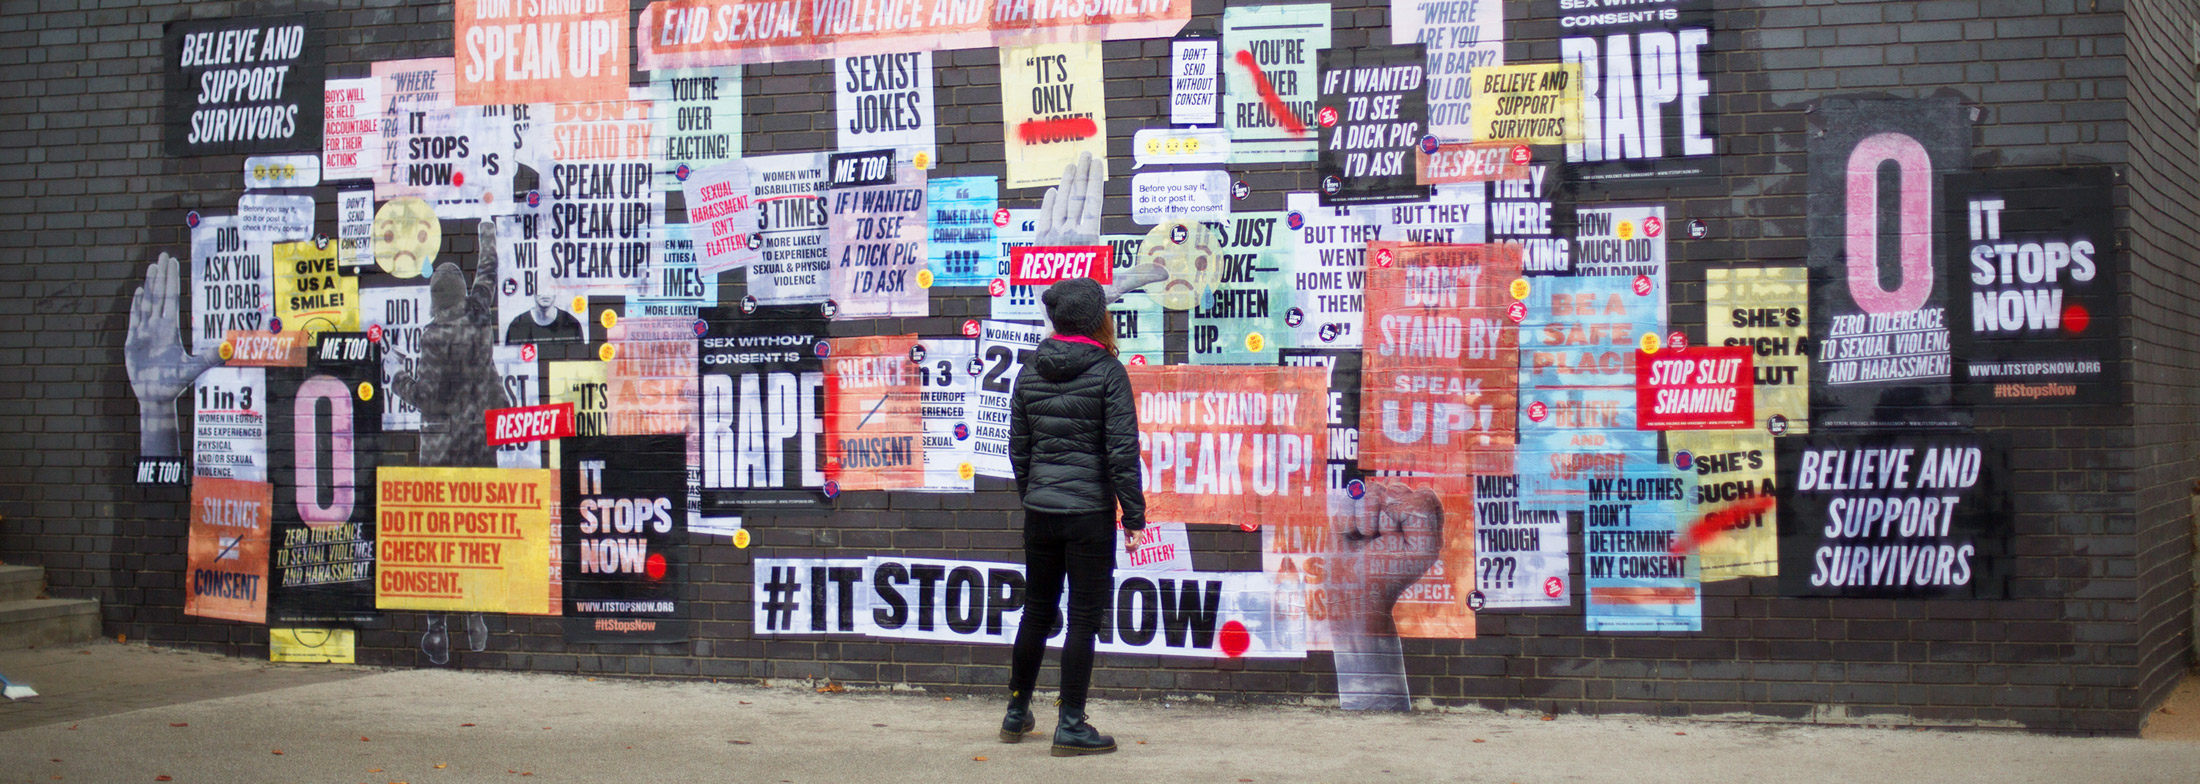 It Stops Now Campaign Video and Photo Production